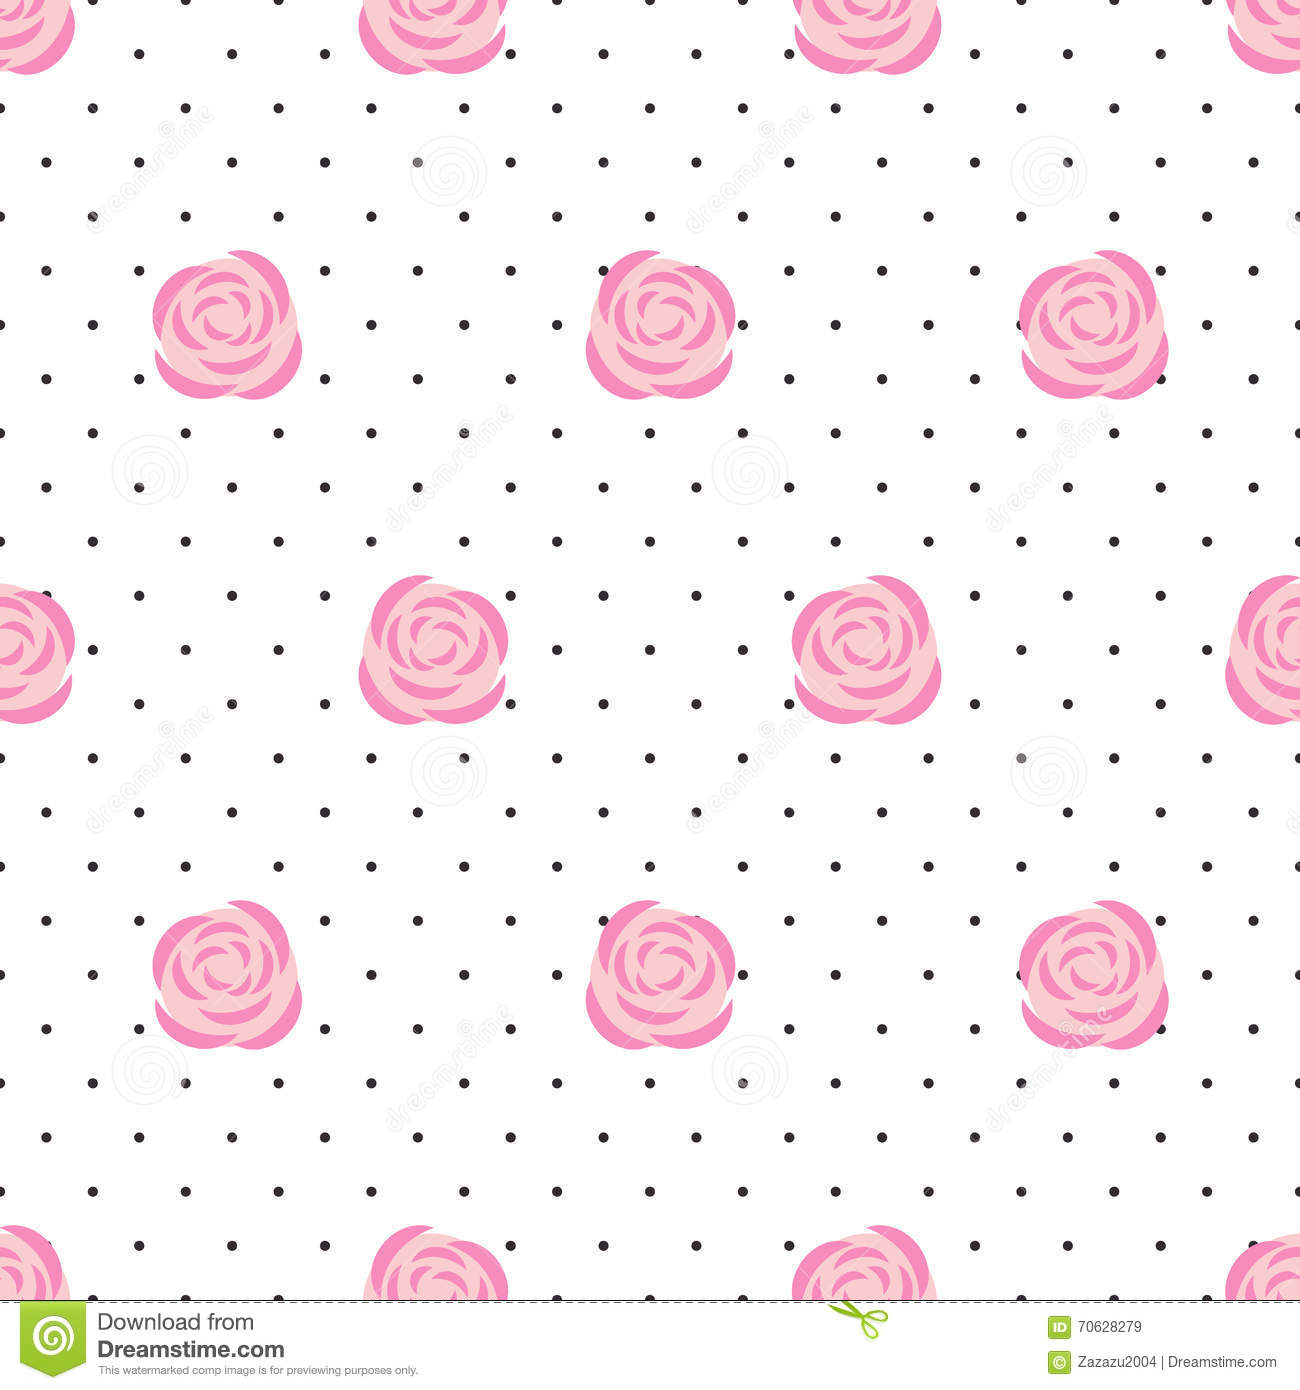 Pics photos pink polka dot s wallpaper - Royalty Free Vector Download Seamless Wallpaper Pink Roses On Polka Dots